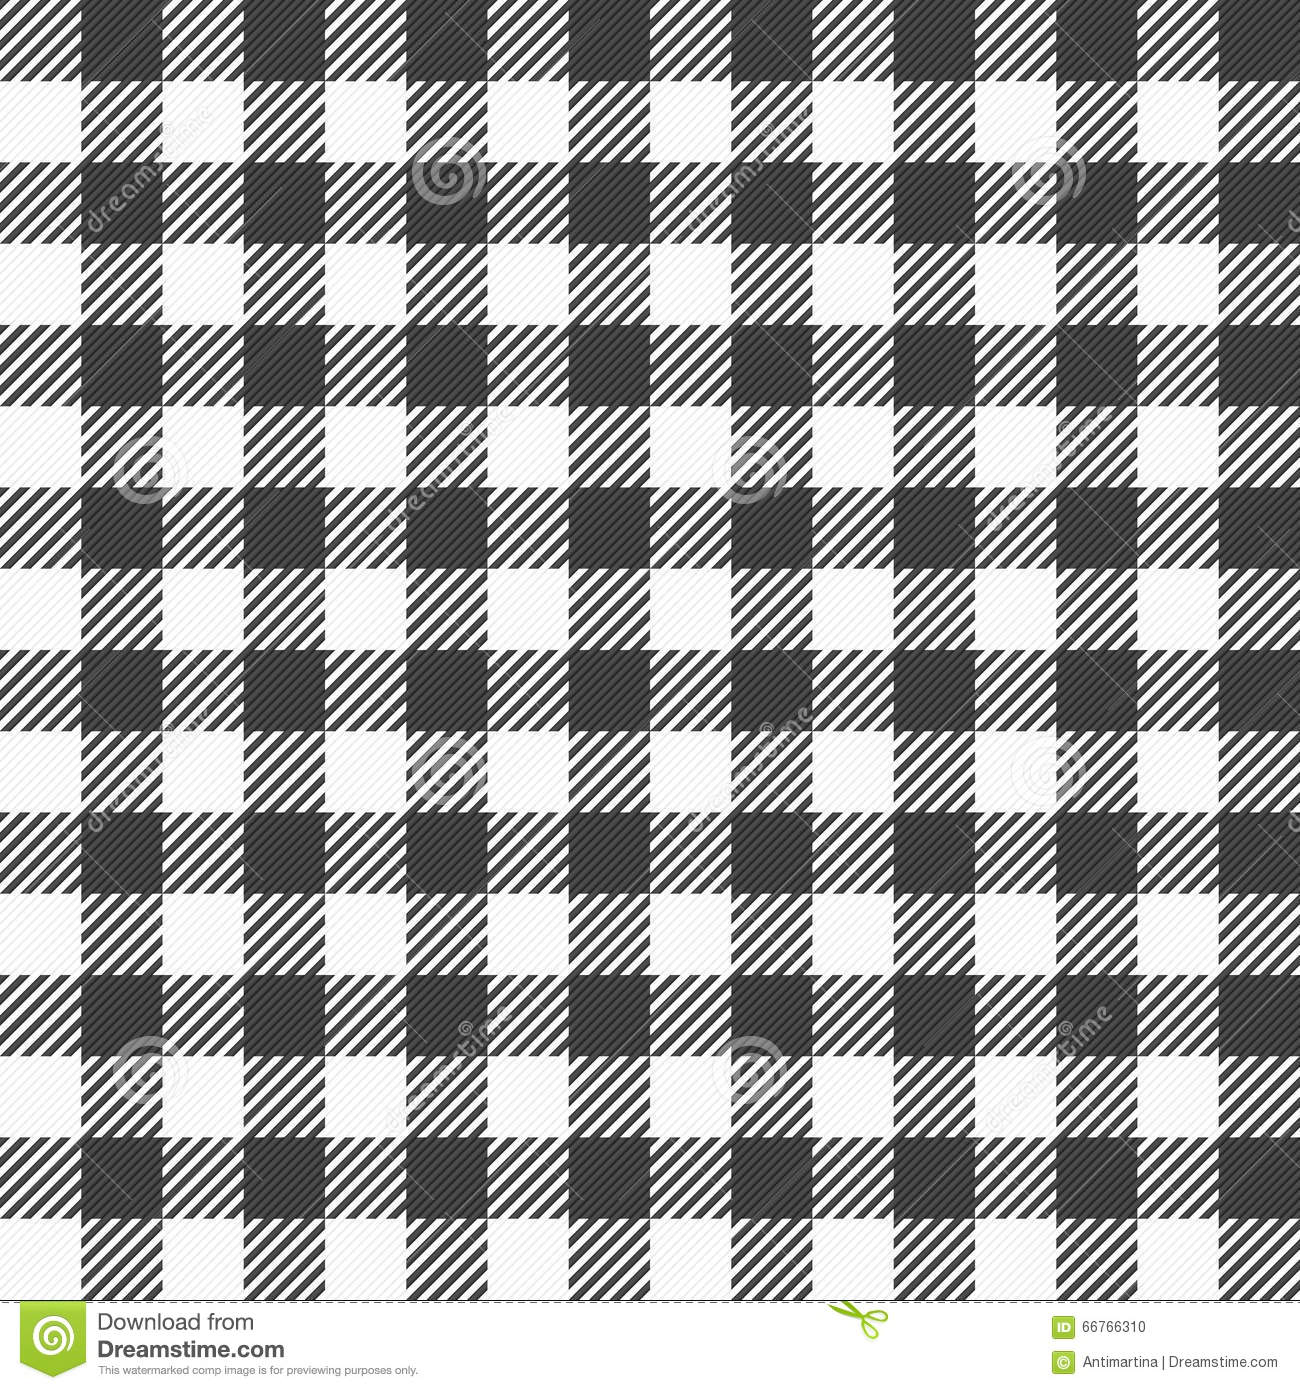 royaltyfree vector download black and white plaid tablecloth